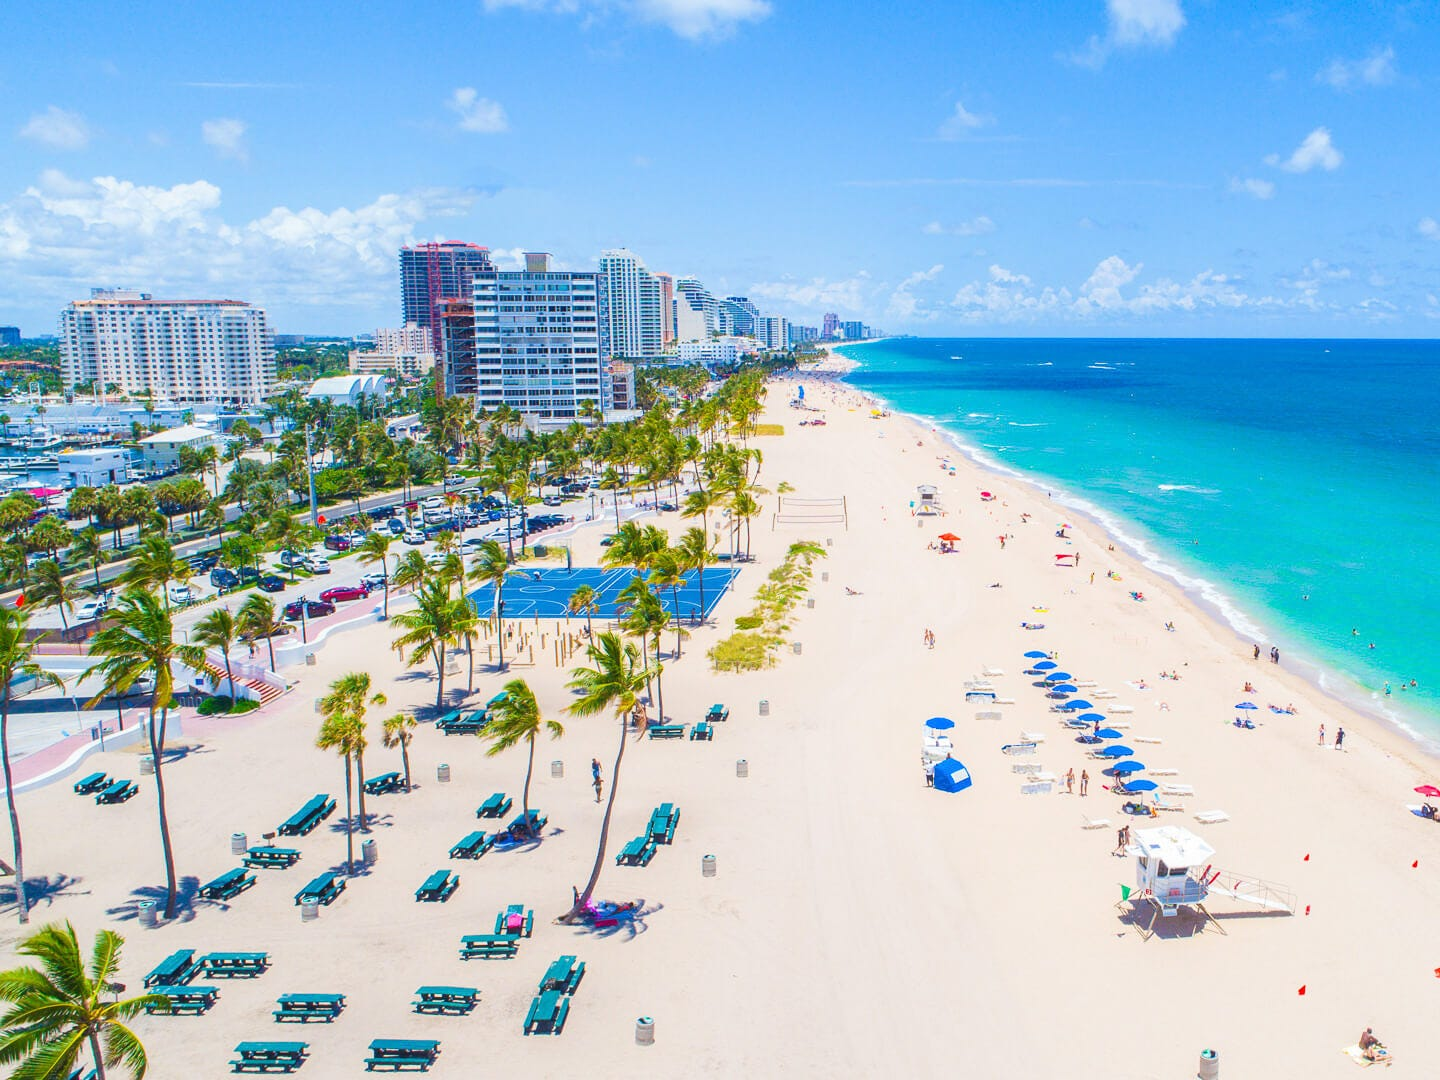 No. 6: Fort Lauderdale, Florida. Thanksgiving trip cost: $1,325. Christmas trip cost: $2,347.50. Fort Lauderdale hotels will really cost you during Christmas, with the second-highest average hotel cost of all the cities included in this study. Prices are not much better during Thanksgiving, when the Florida city has the fifth-highest average hotel cost.